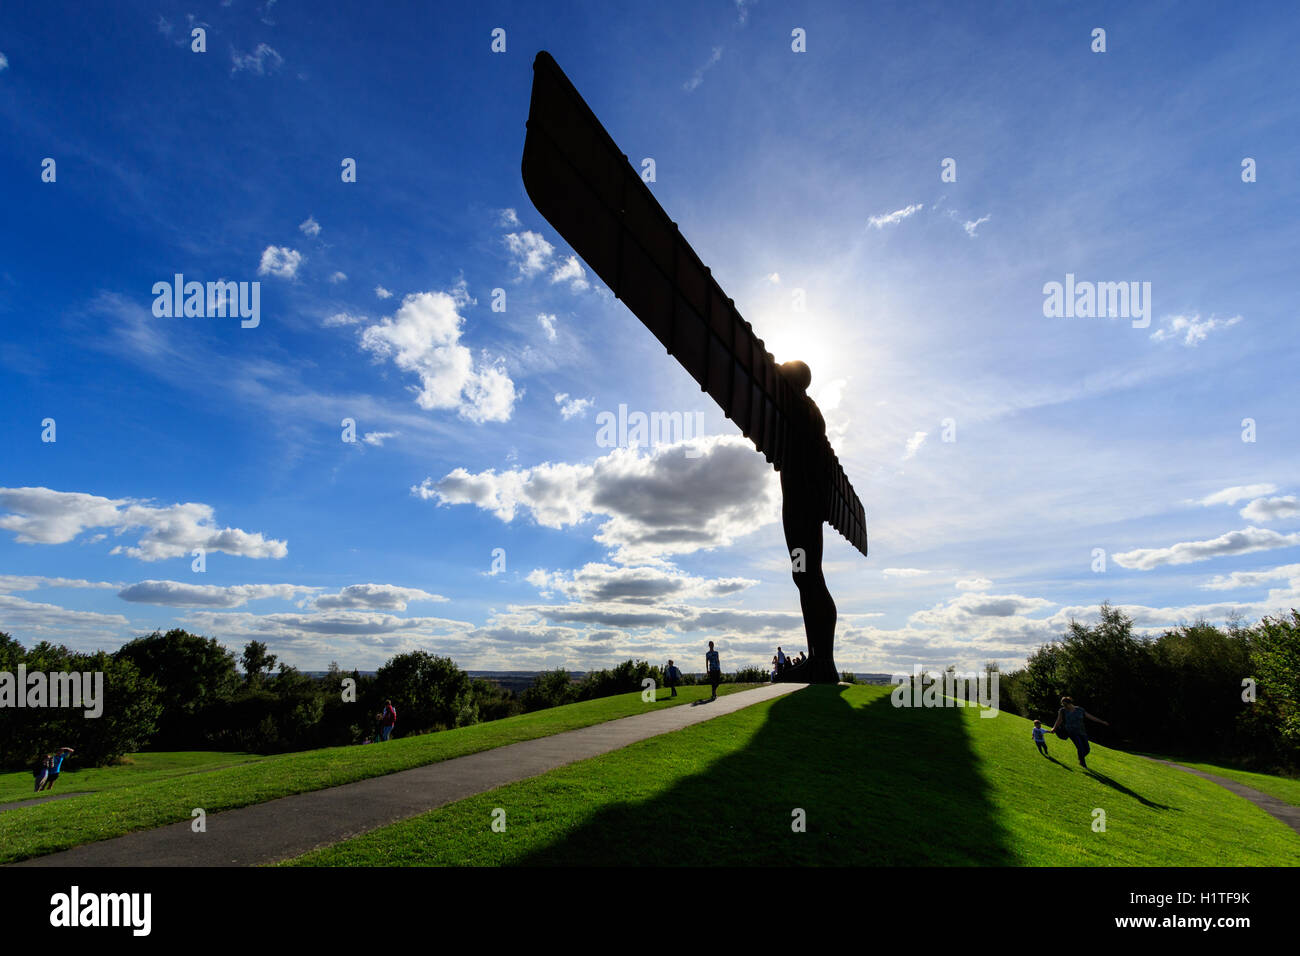 View of the Angel of the North statue with blue sky and white clouds. - Stock Image